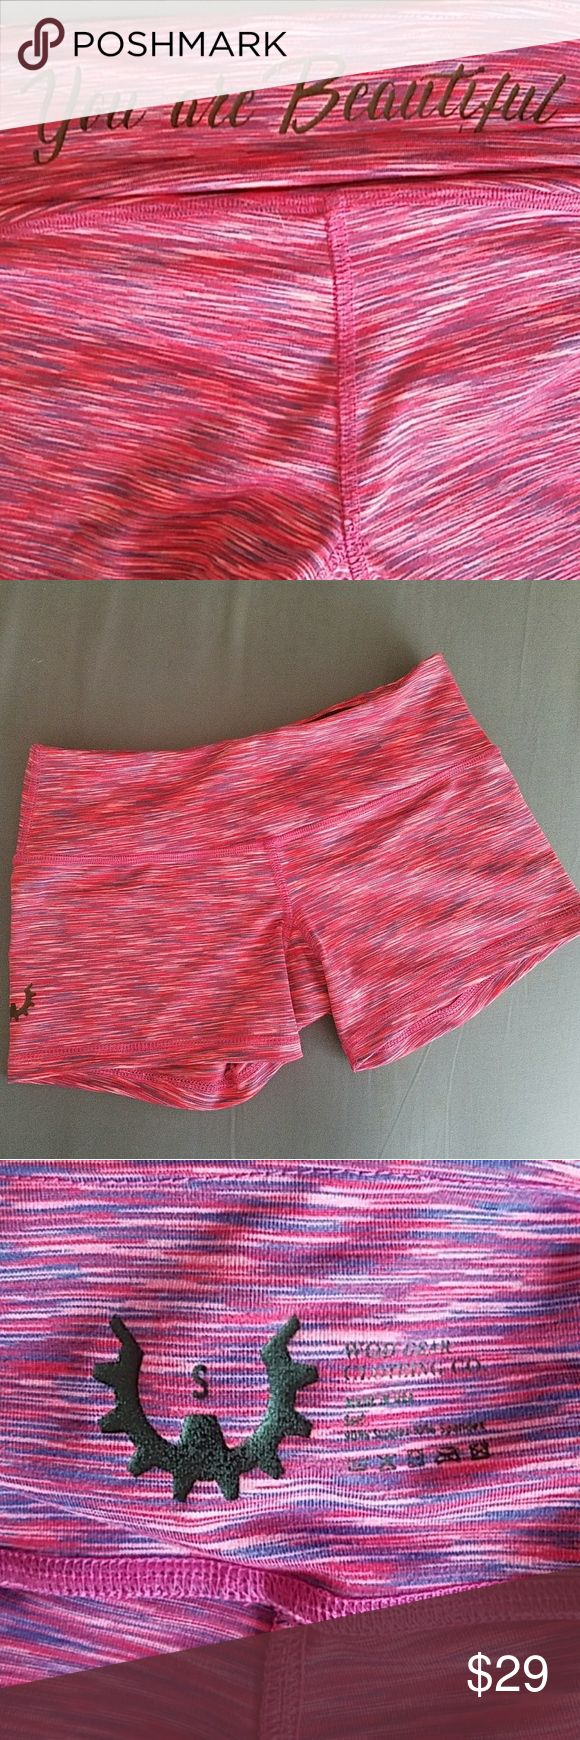 Athletic Shorts Pink and blue WOD GEAR bike style shorts. Like new. Size small. Small front key pocket. MMA WOD GEAR Shorts